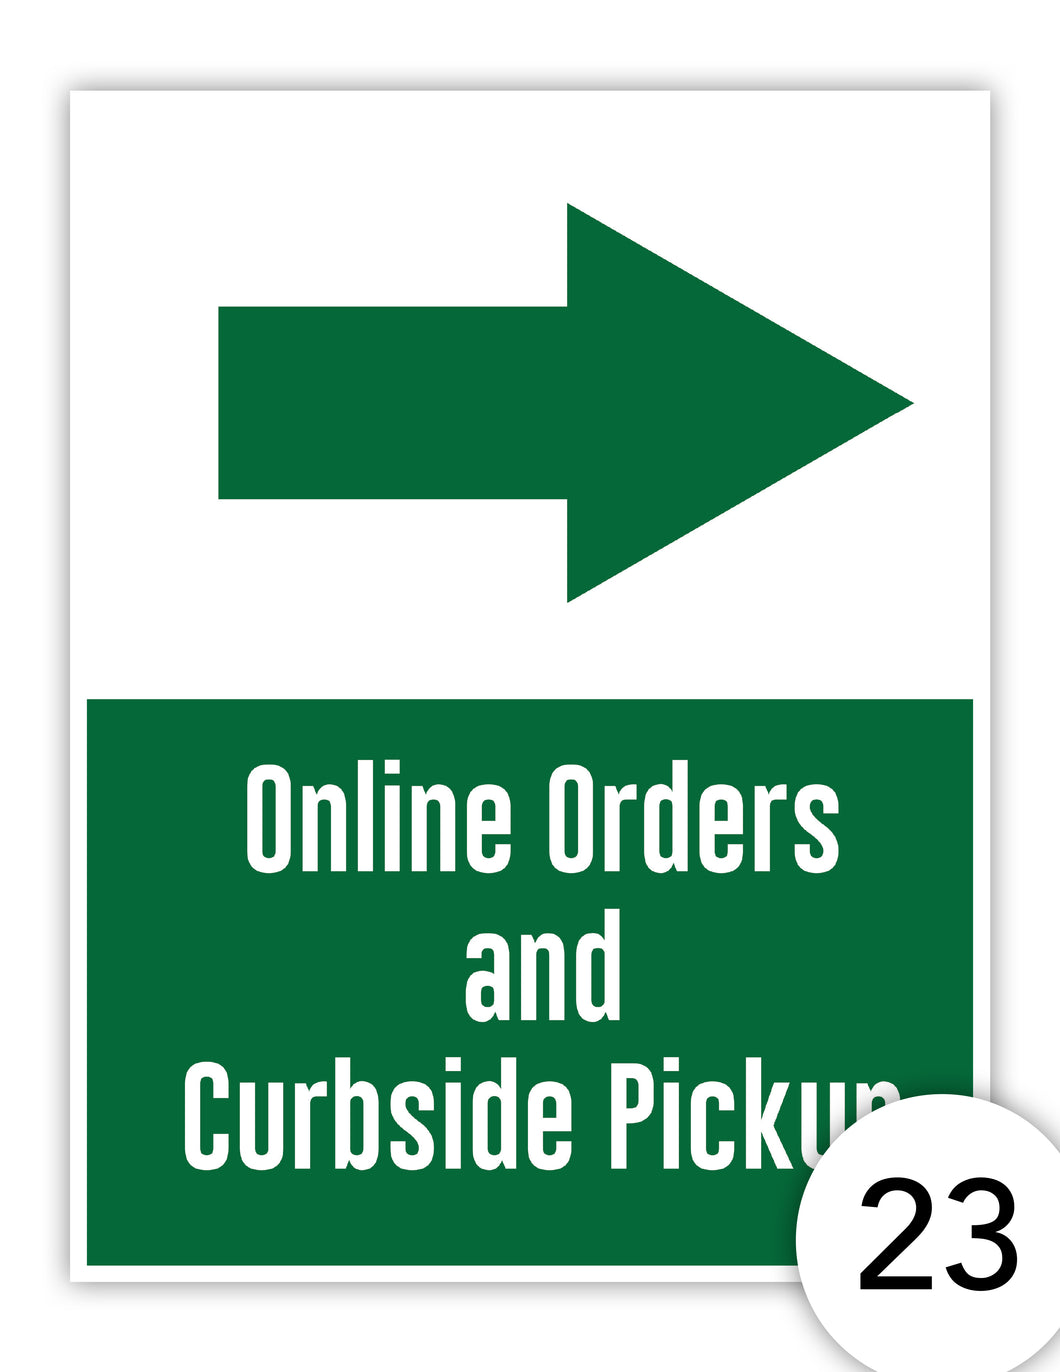 Online Orders and Curbside Pickup - Right arrow